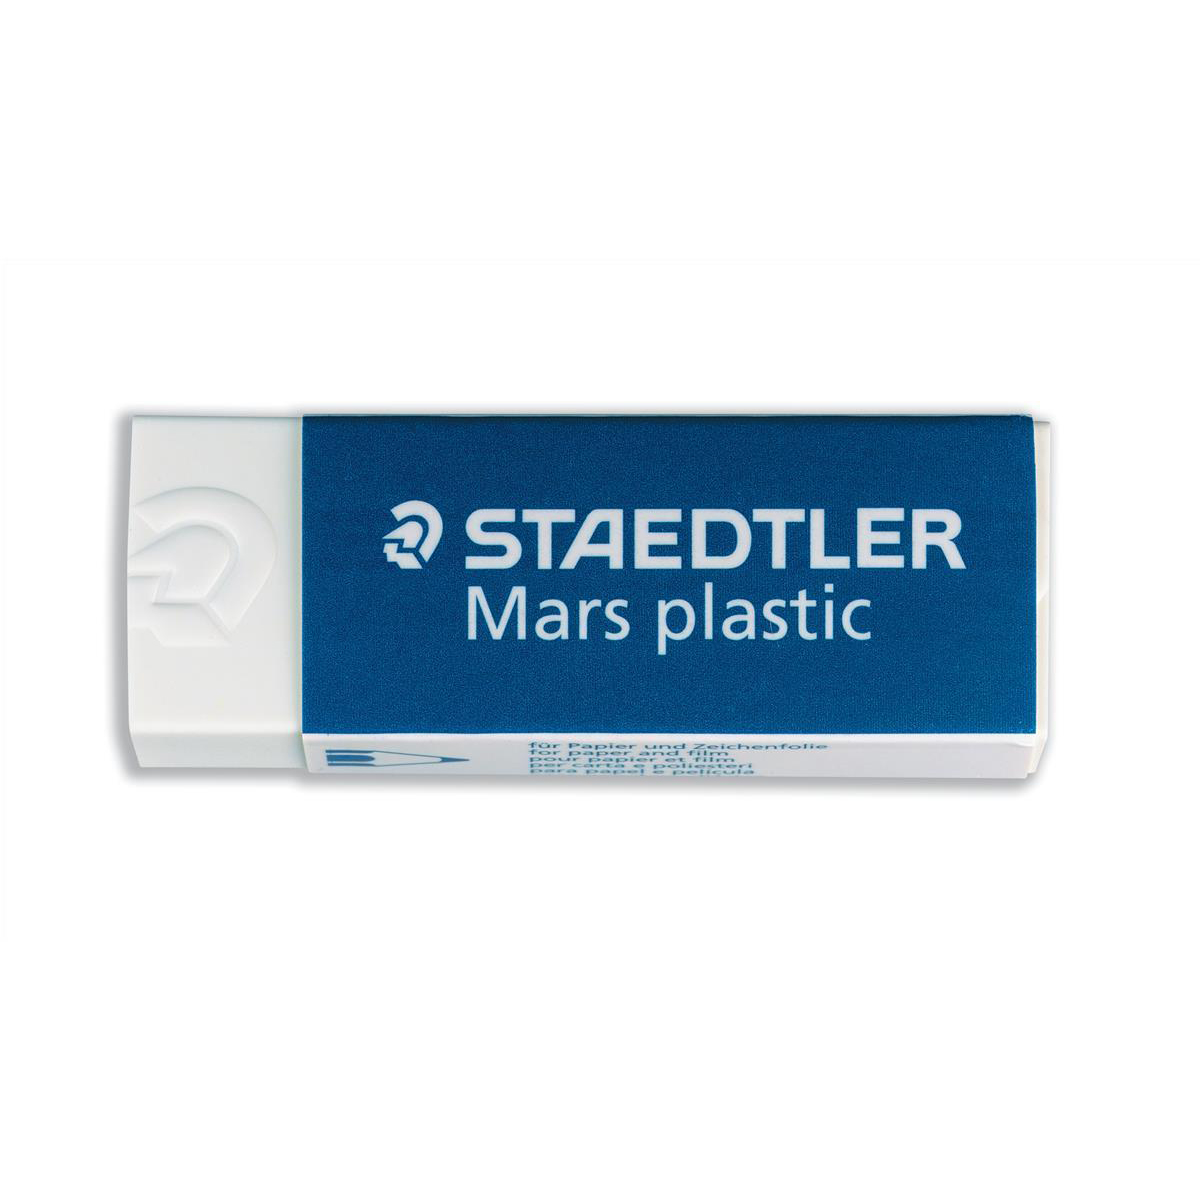 Staedtler Mars Plastic Eraser Premium Quality Self-cleaning 65x23x13mm Ref 52650 Pack 20